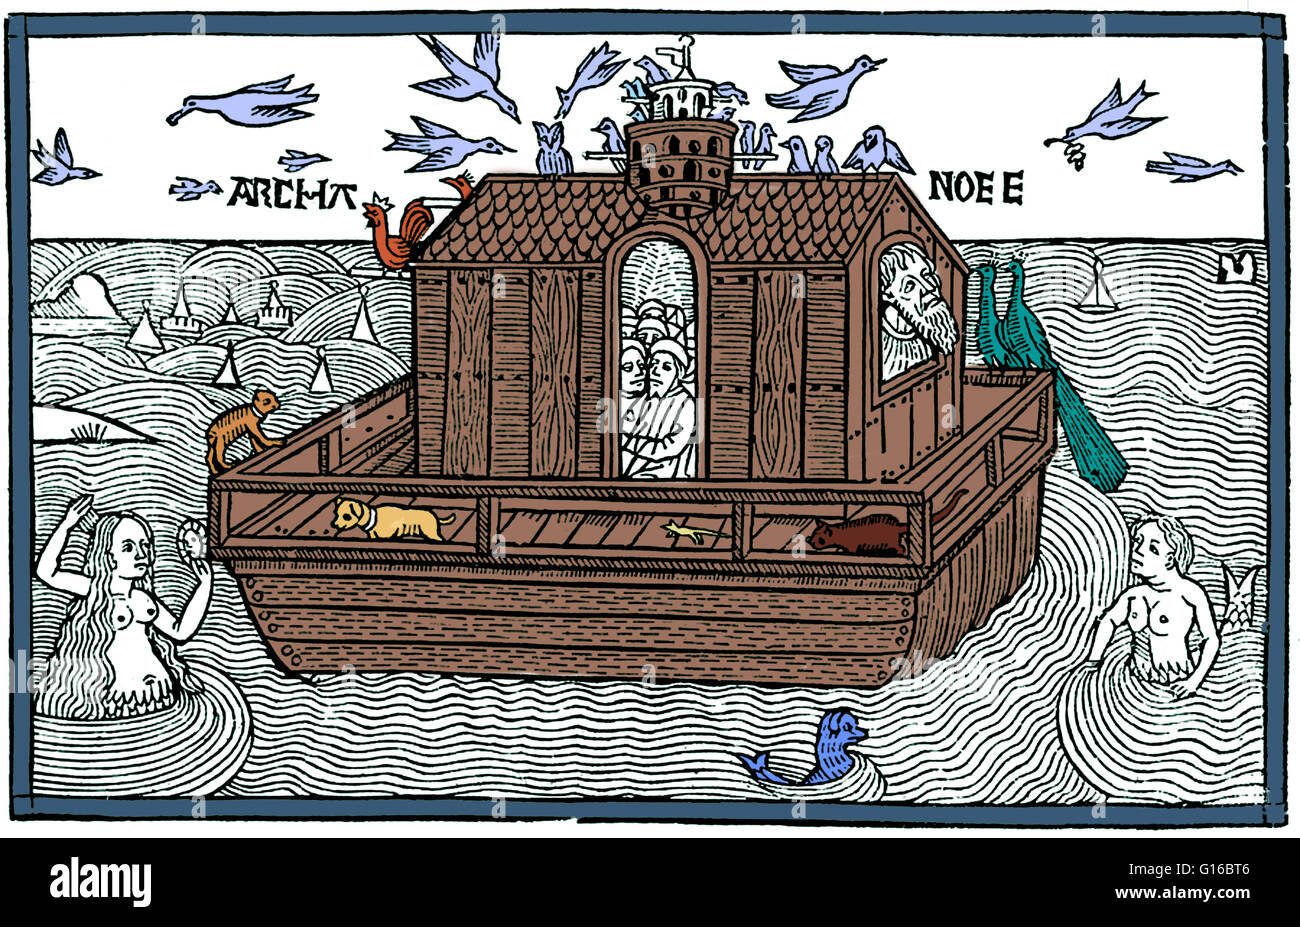 Color Enhancement Of A Woodcut Of Noahs Ark With Merfolk From The